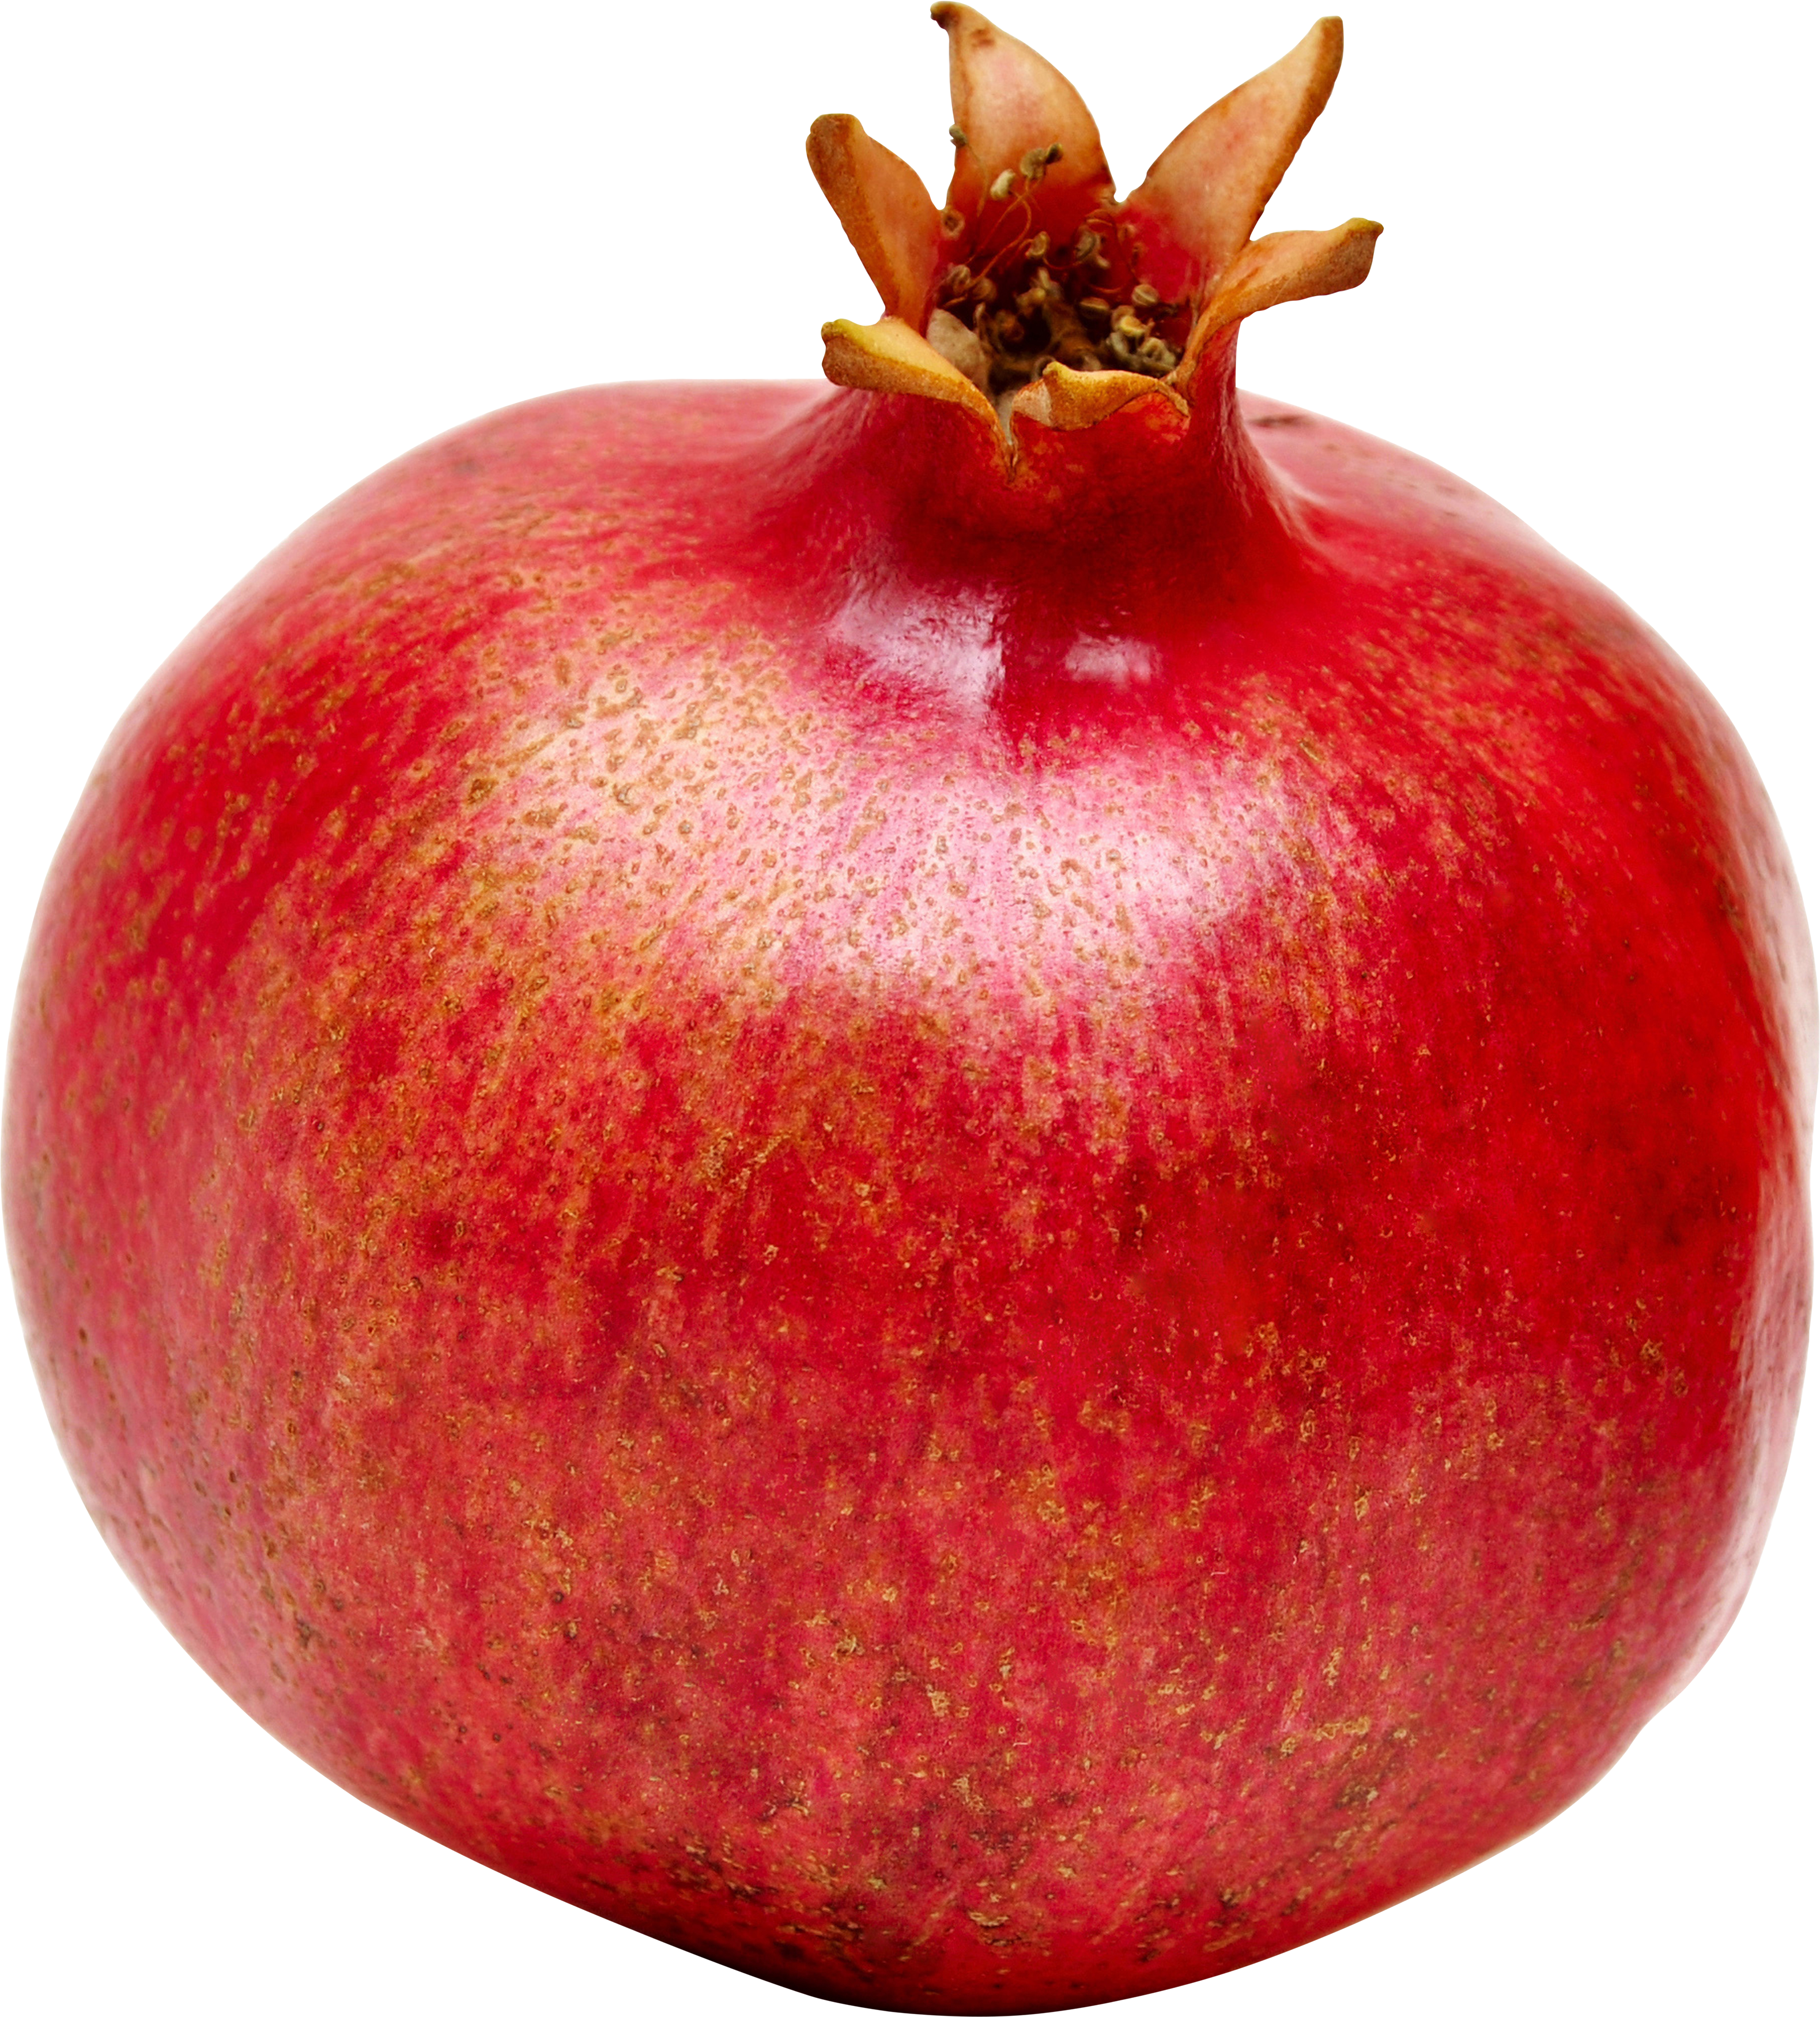 Pomegranate PNG images free download.